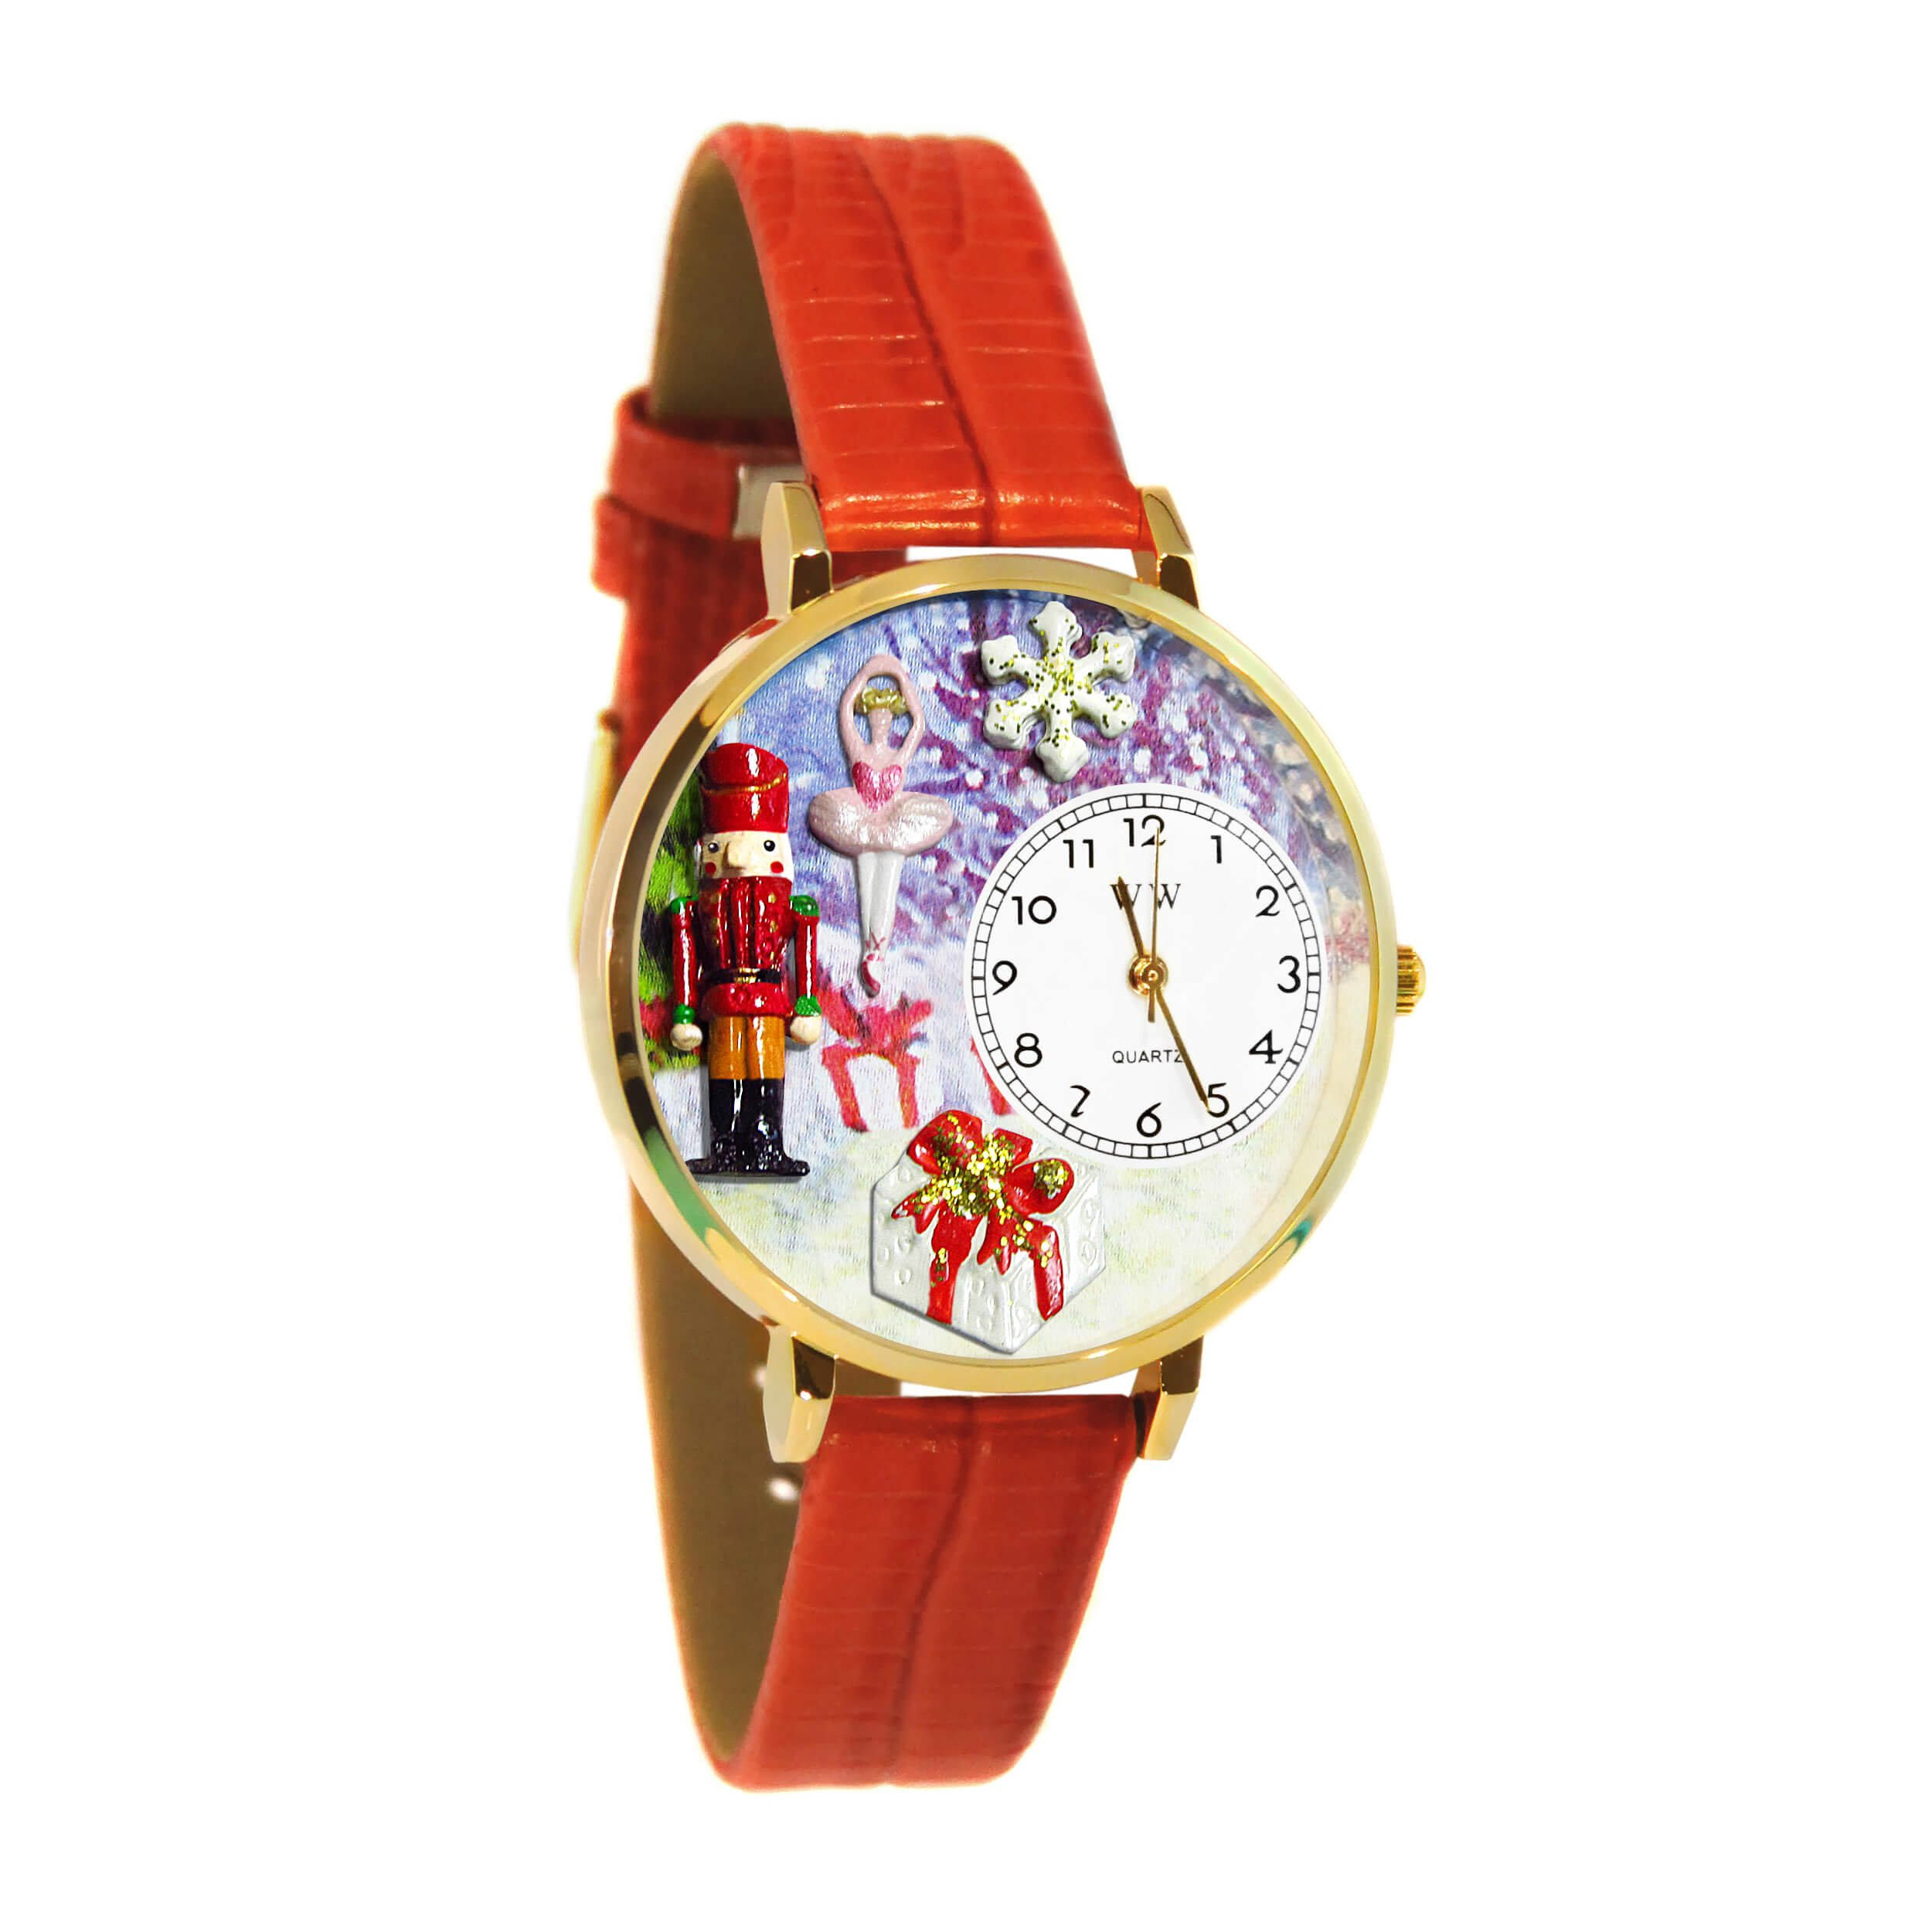 Whimsical Watches Women's G1220010 Christmas Nutcracker Red Leather Watch